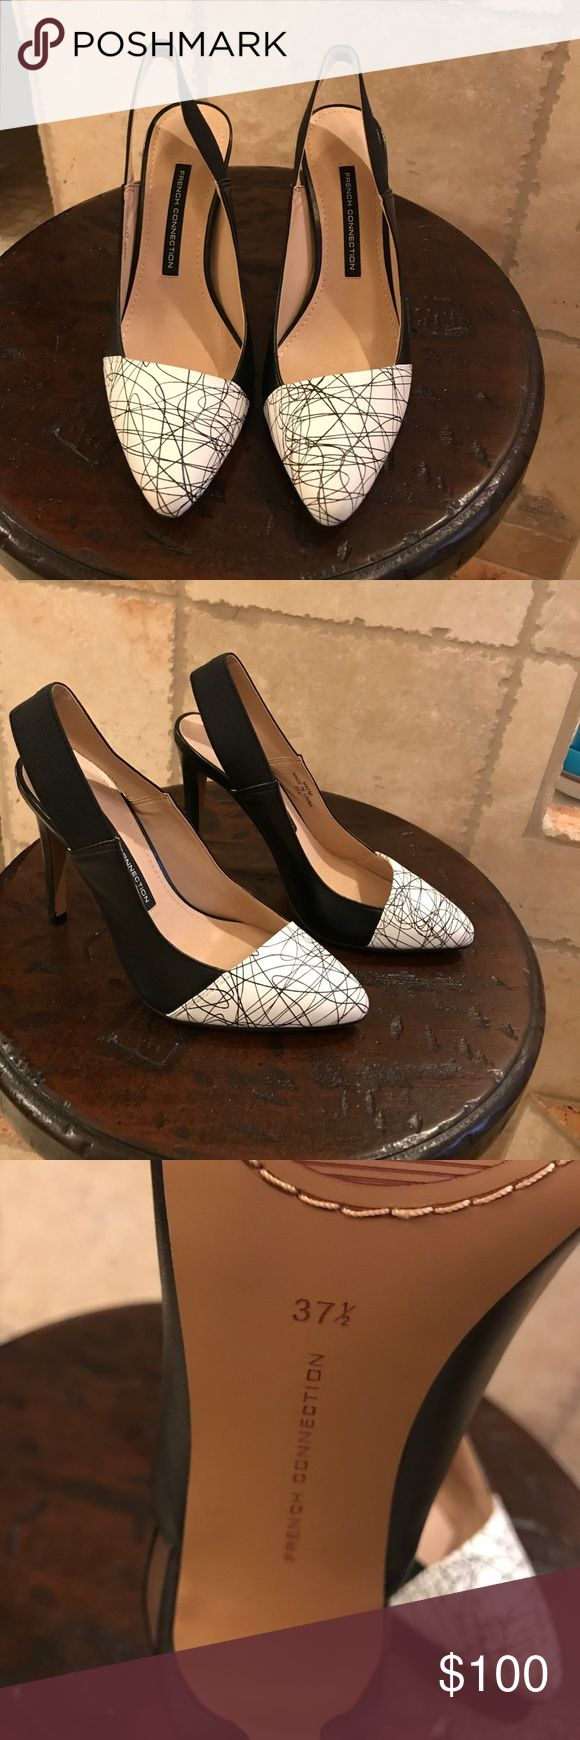 """BNWOB French Connection Heels Black and white abstract print heels by French Connection. 4"""" heel height. Never worn. French Connection Shoes Heels"""